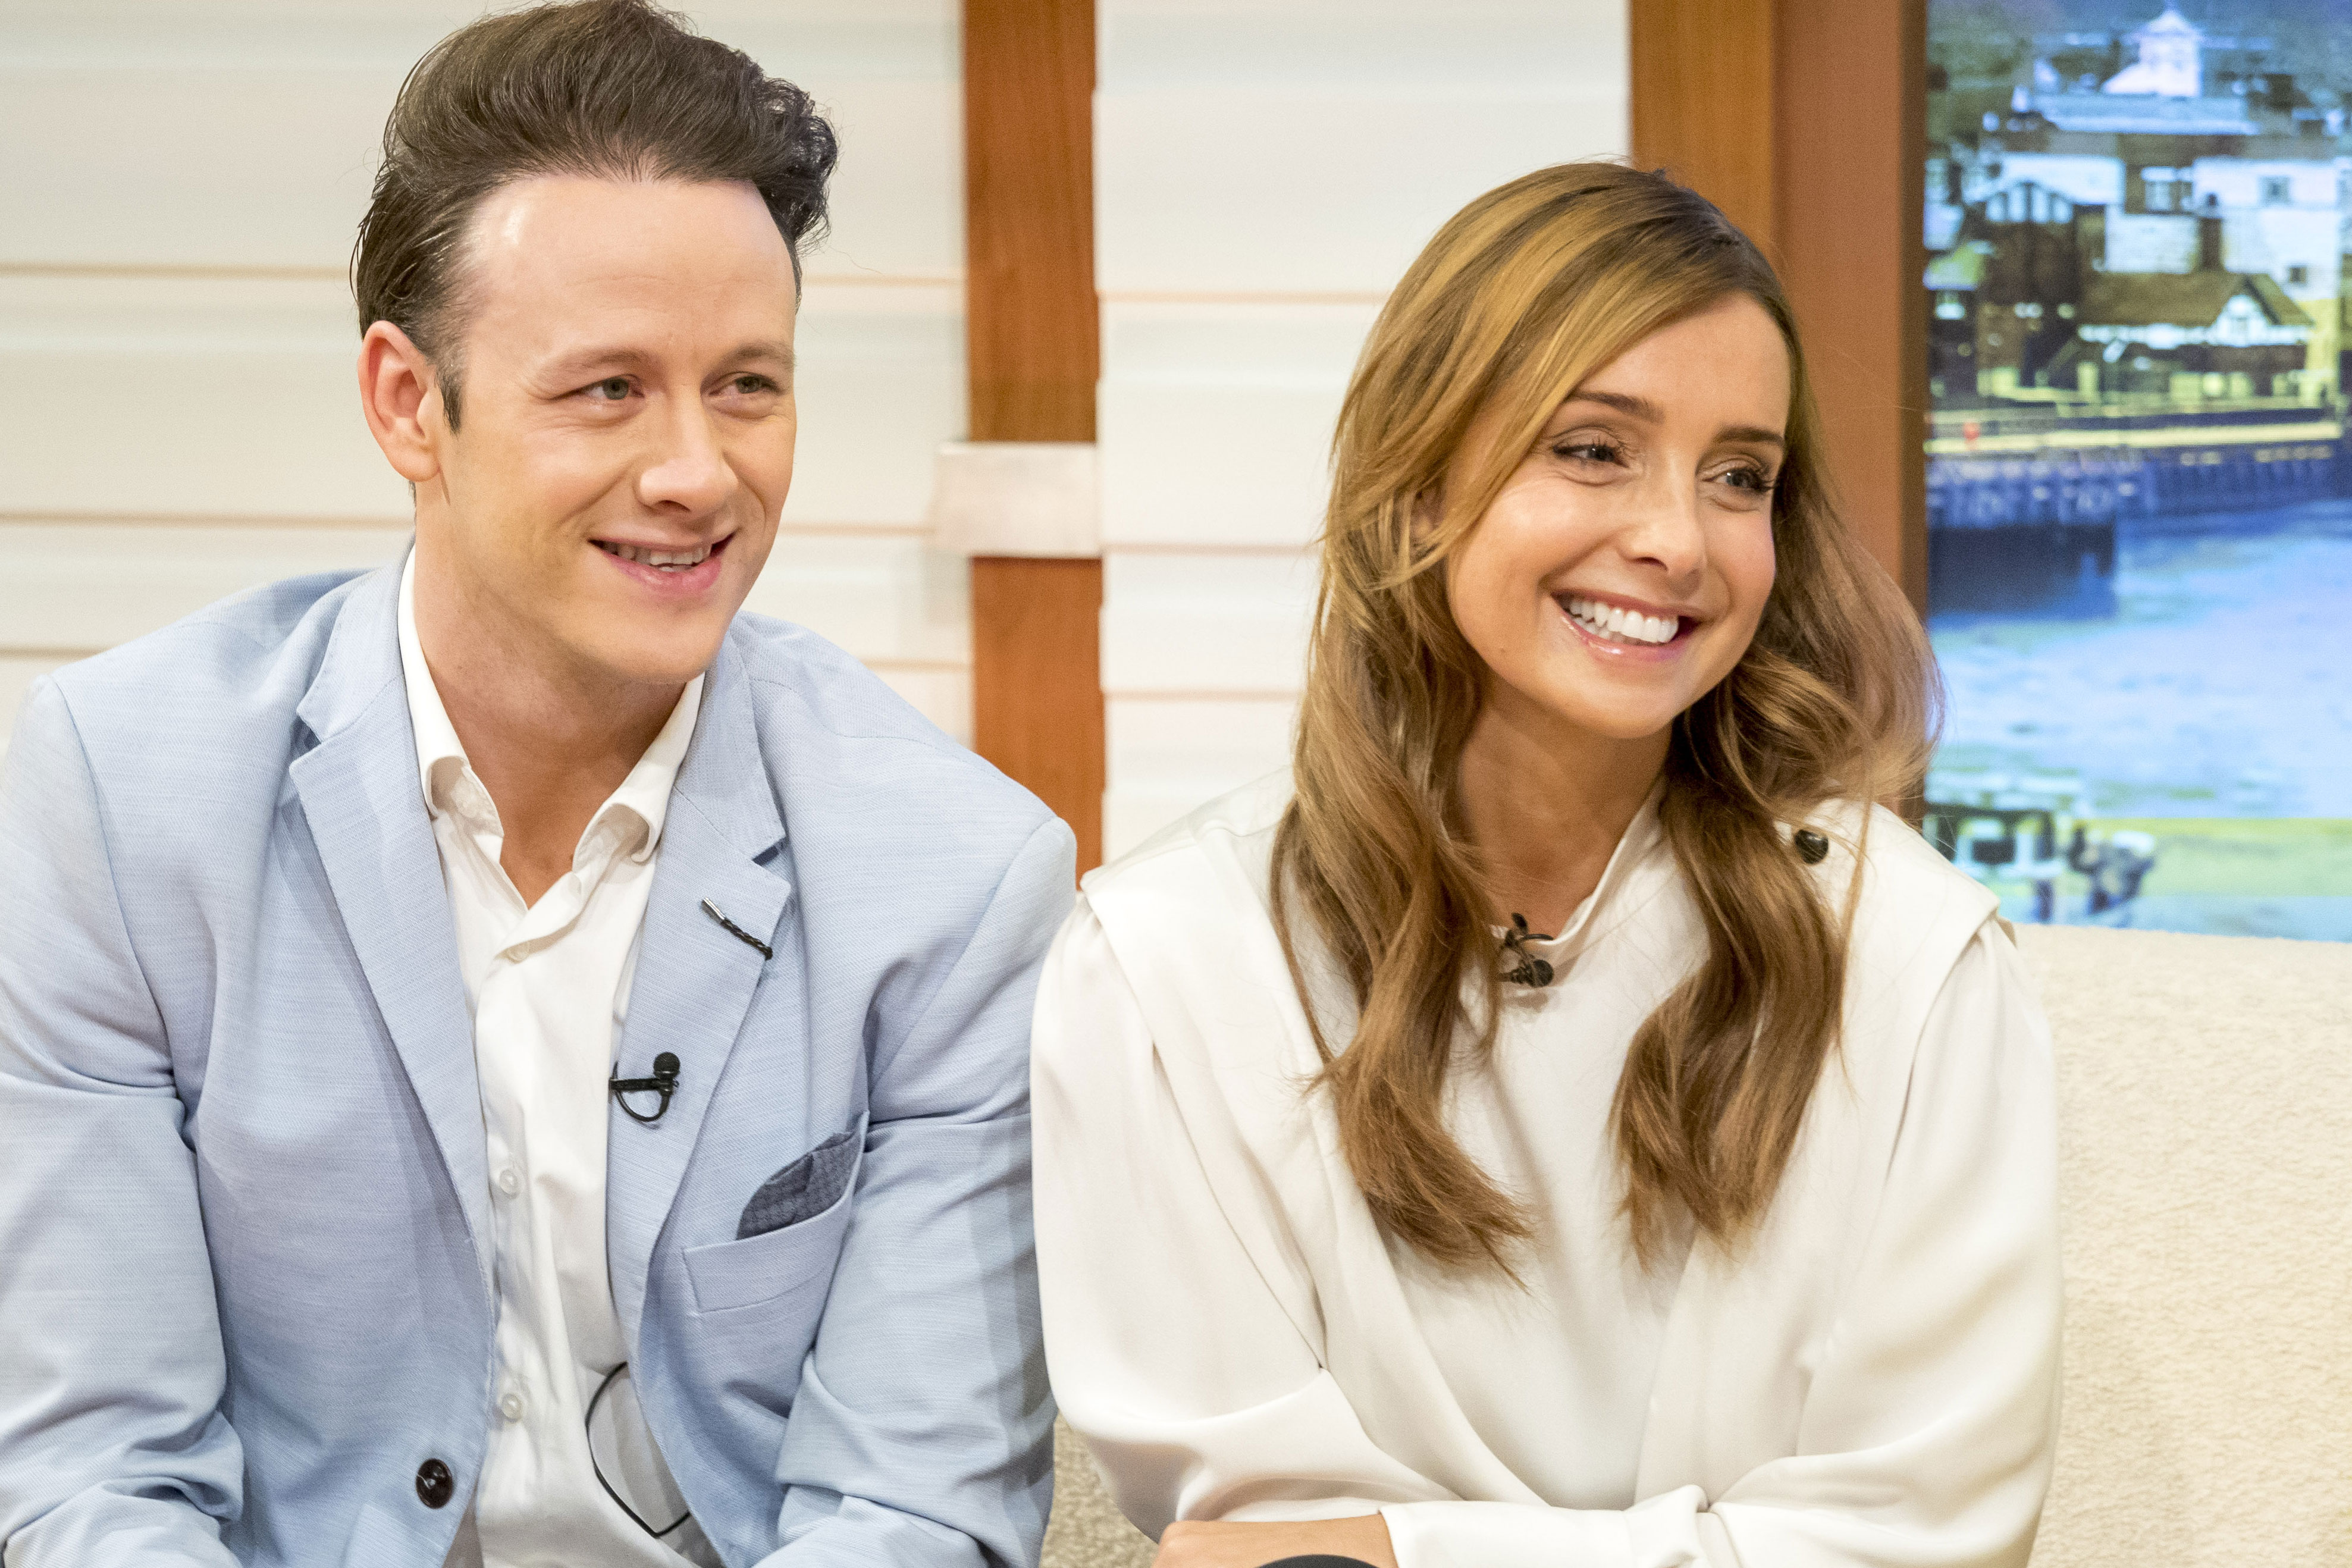 Louise Redknapp reveals she no longer speaks to former Strictly partner Kevin Clifton amid Stacey Dooley romance scandal